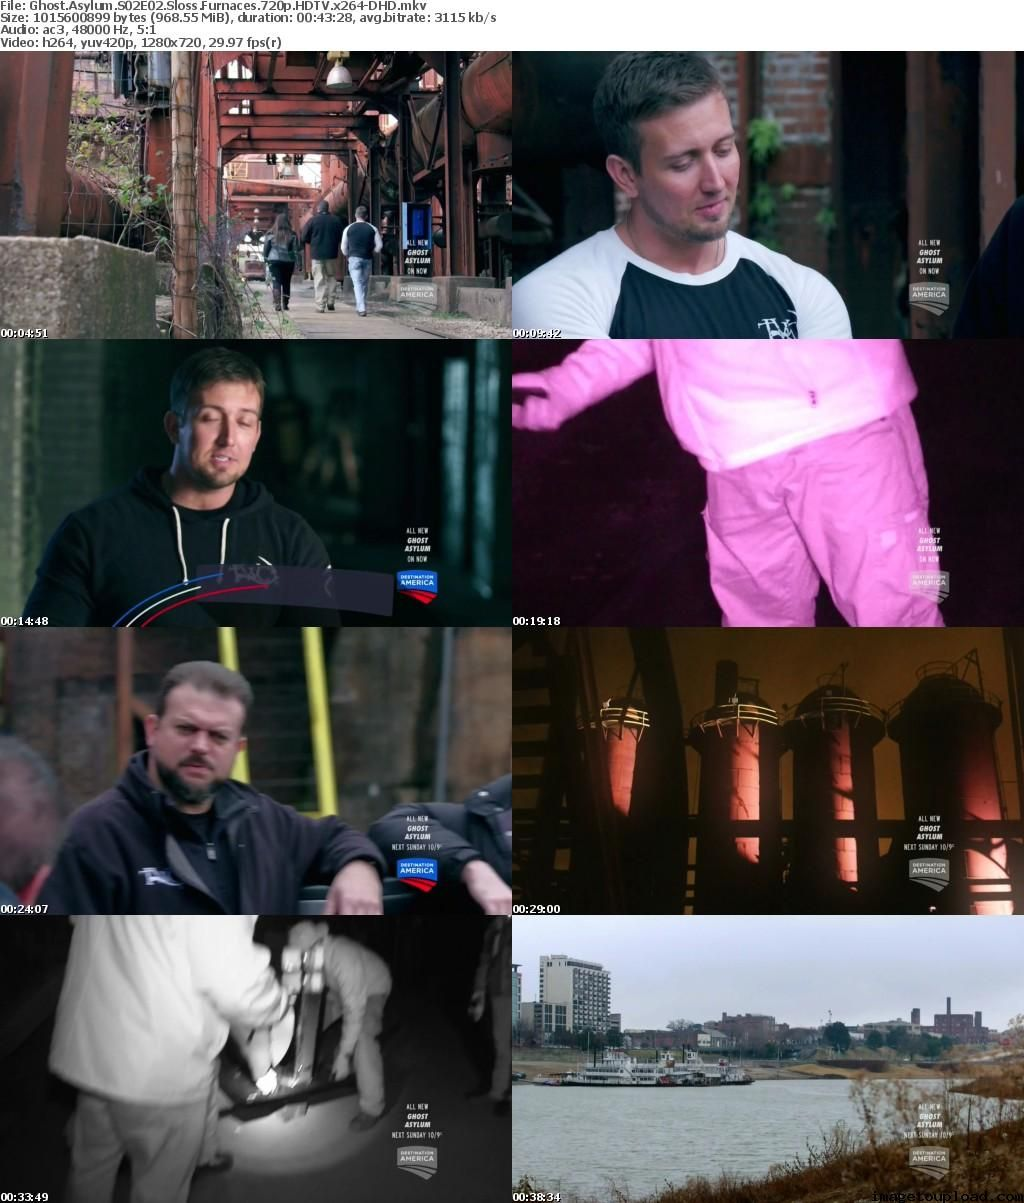 """ghost asylum at sloss furnace 